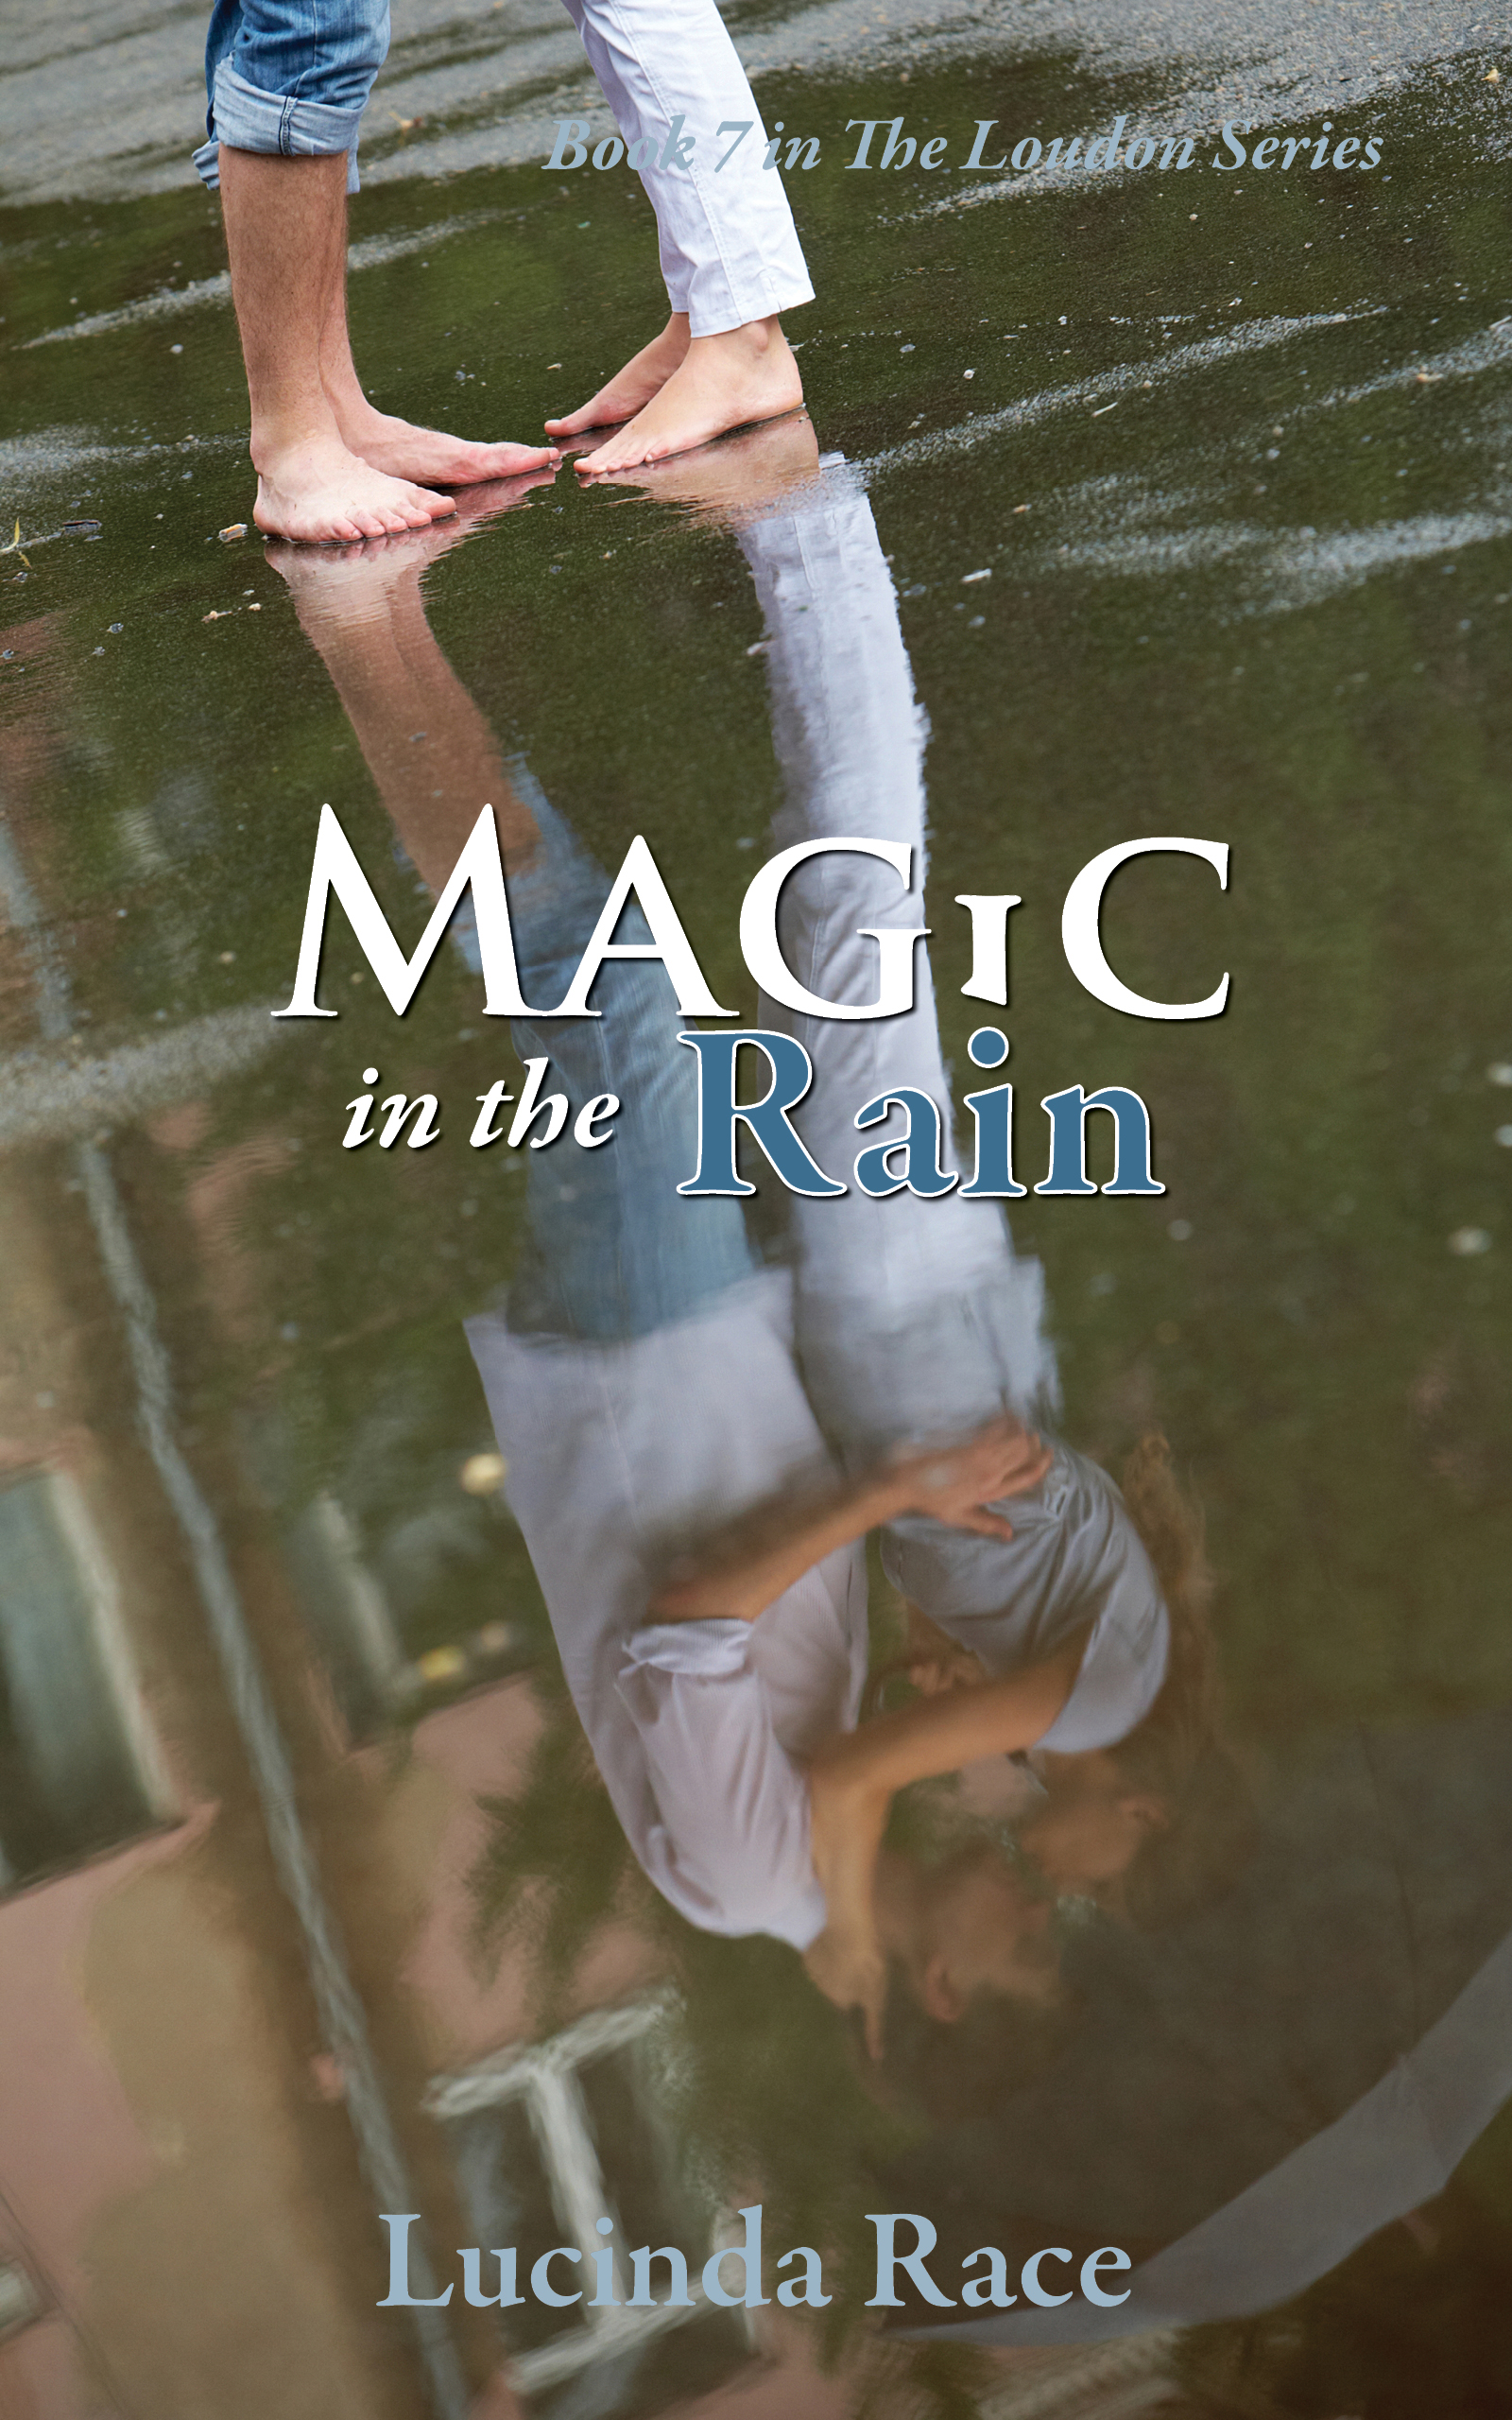 Magic in the Rain by Lucinda Race